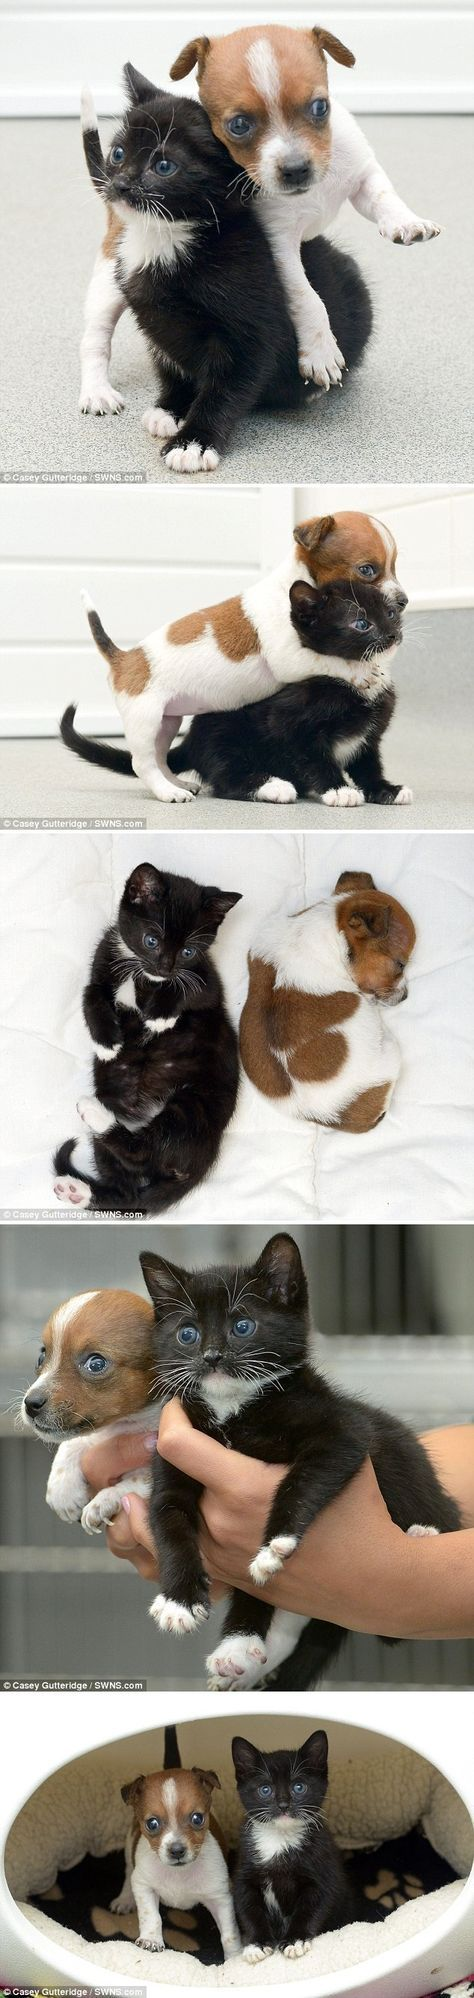 52 Best Kittens Puppies Together Oh My Images Puppies